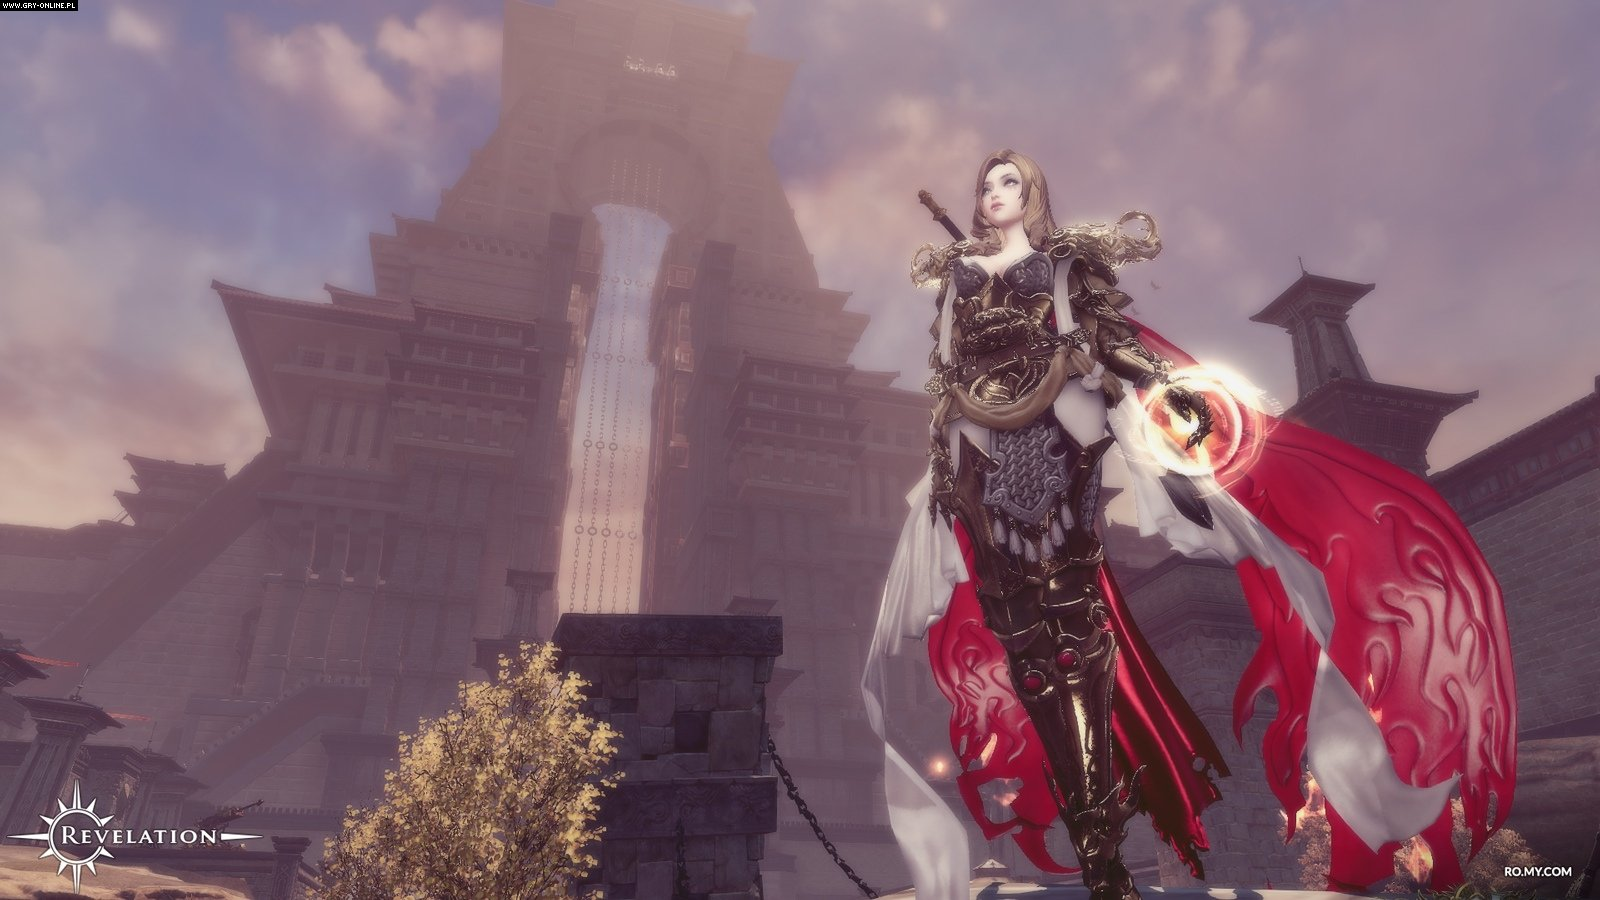 Revelation Online PC Gry Screen 6/10, NetEase, My.com